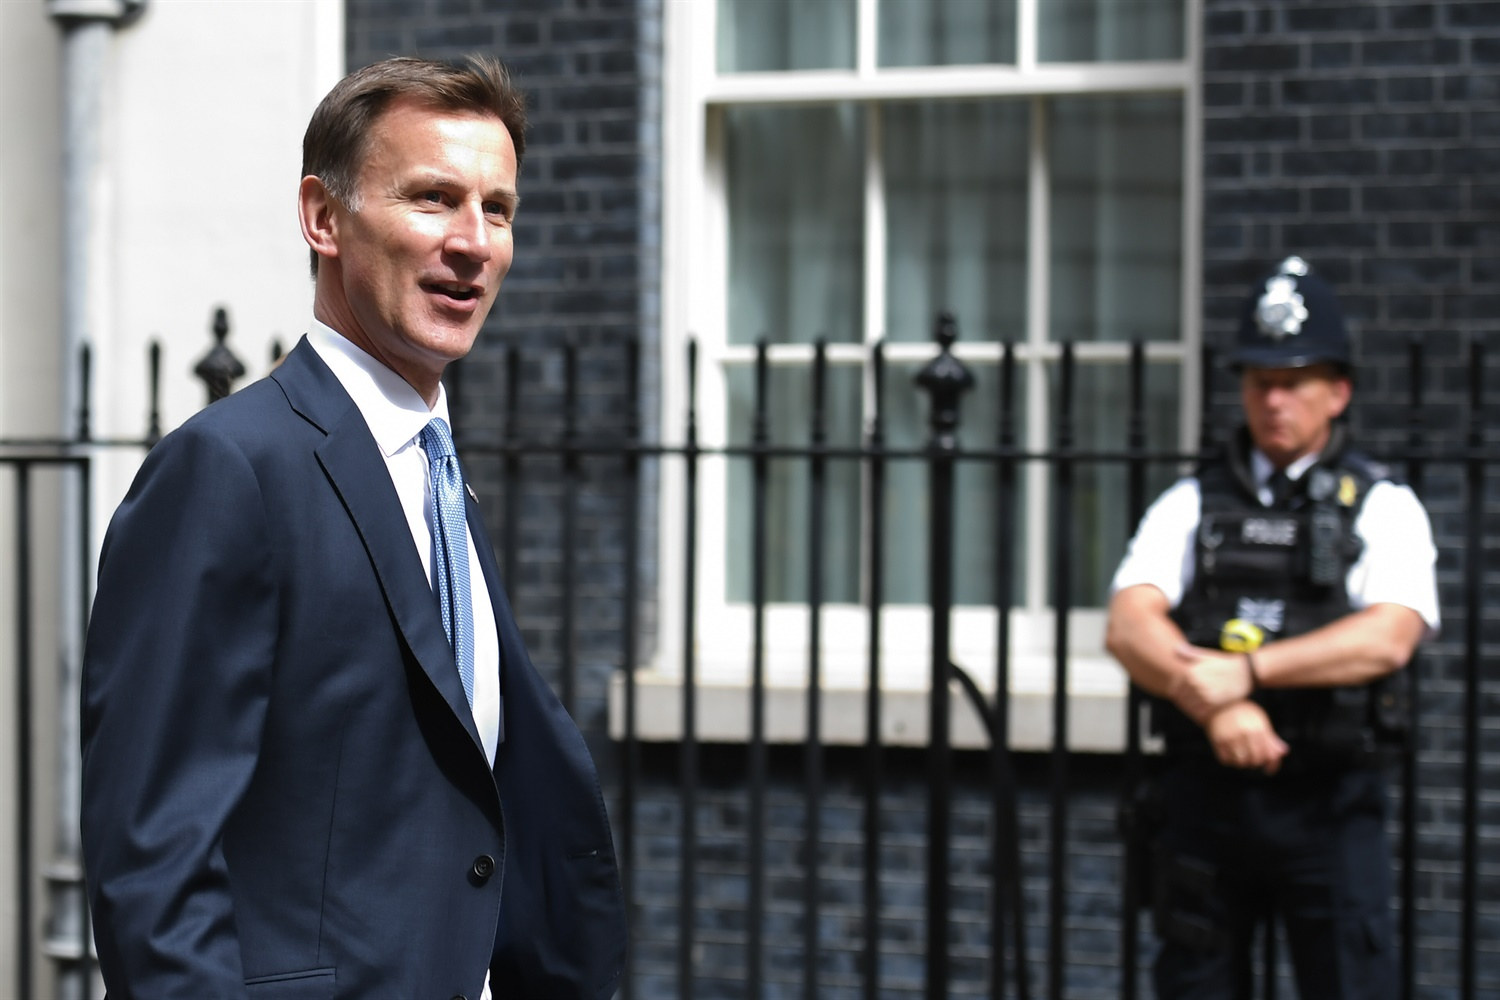 NHS Providers welcomes Jeremy Hunt as health select committee chair